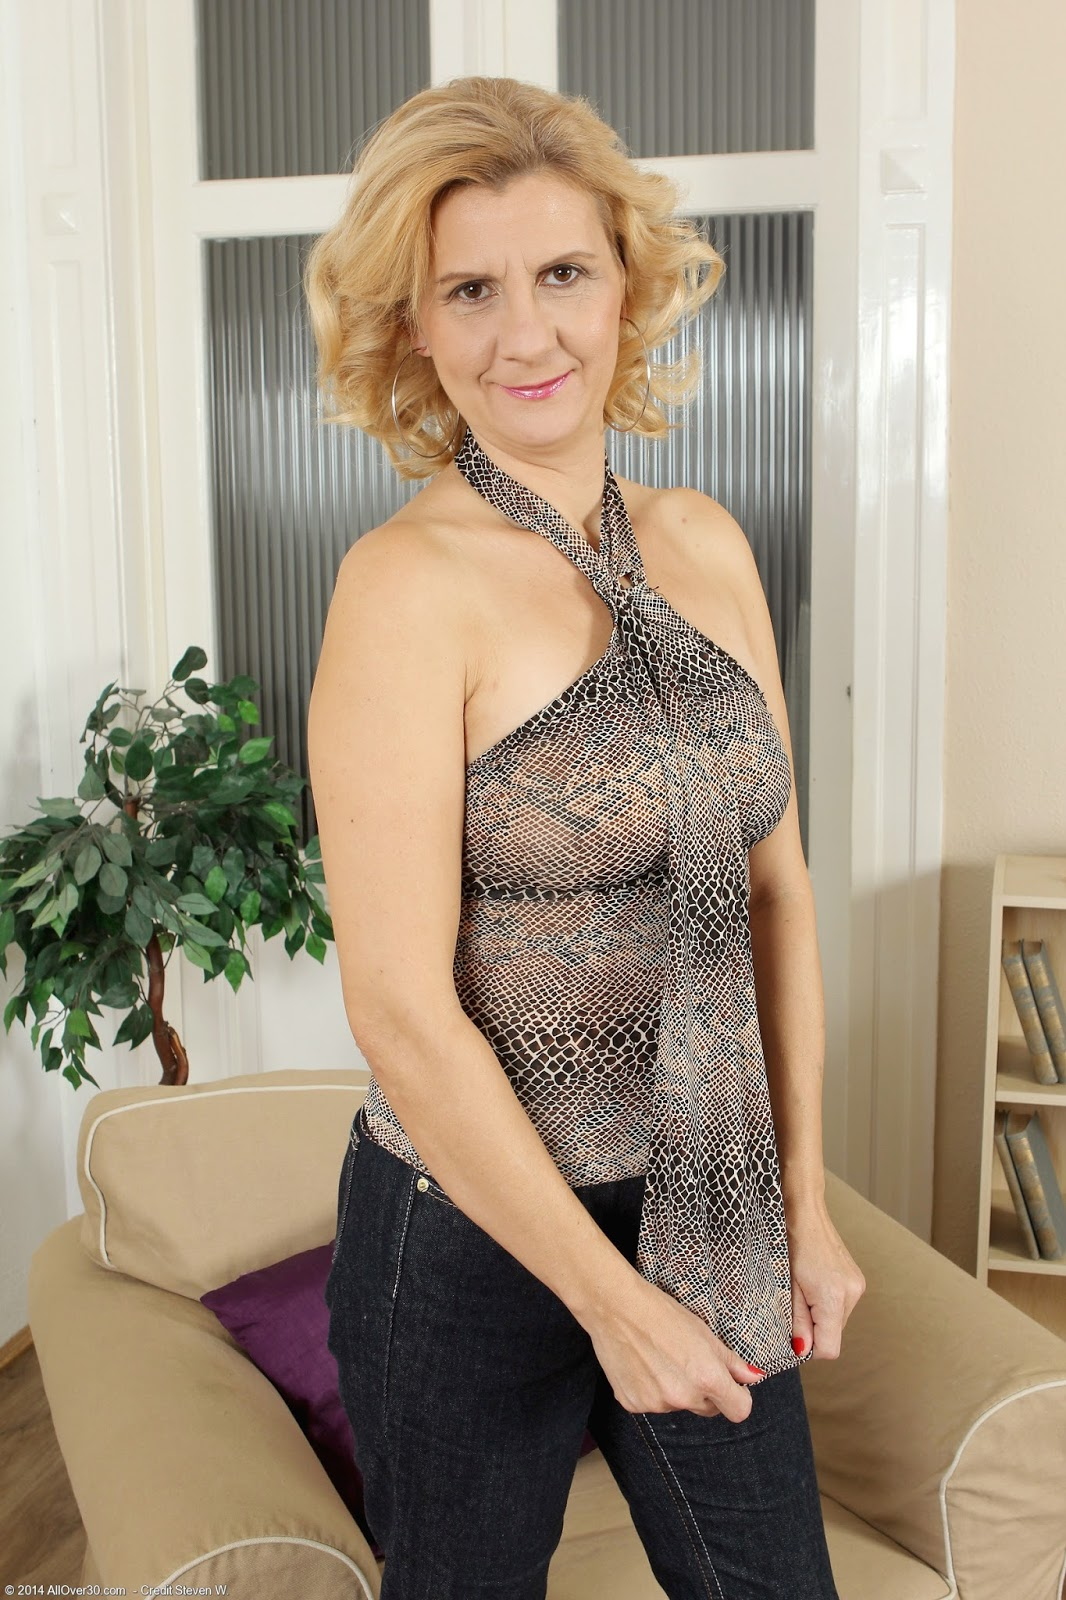 Most Trusted Mature Online Dating Services In Dallas